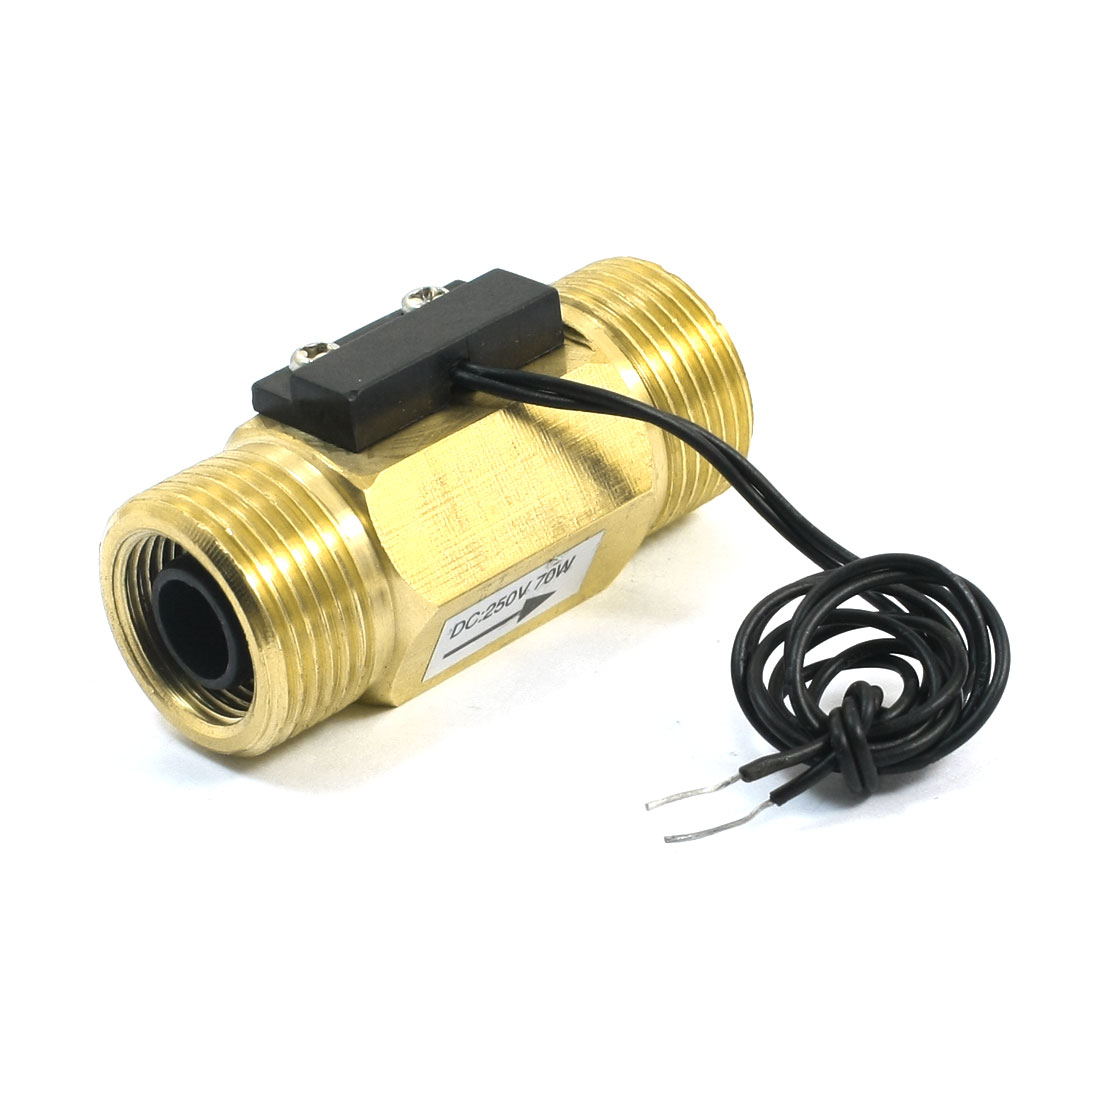 DC250V Brass G3/4 26mm Male Thread Port Reed Water Flow Switch Flowmeter 1-30L/min